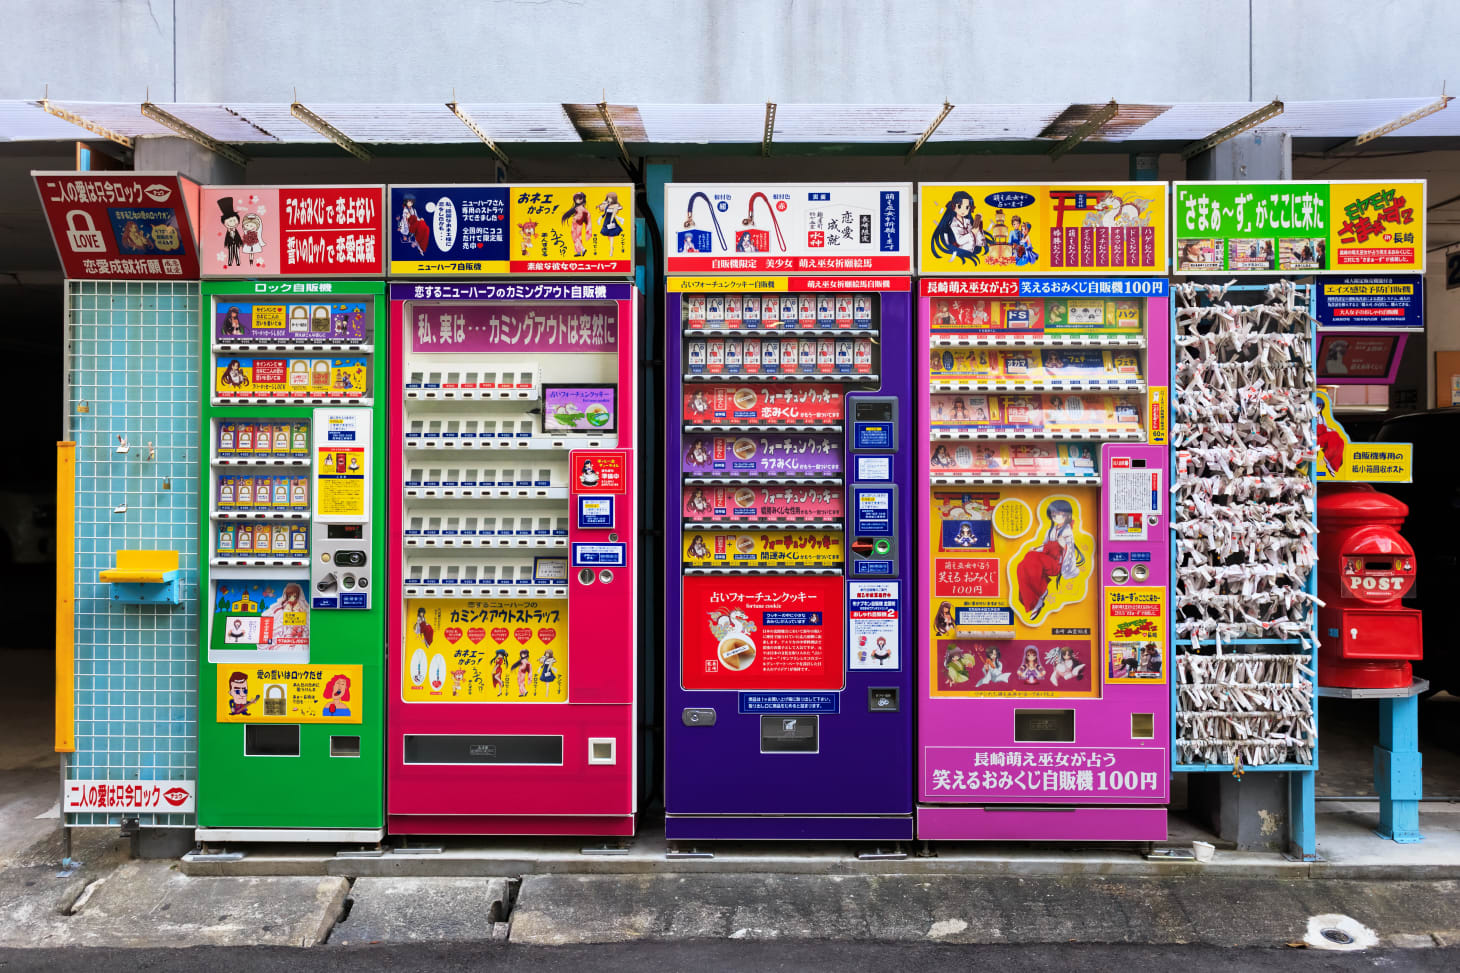 17 Vending Machines That Prove Anything Can Be Bought On The Go